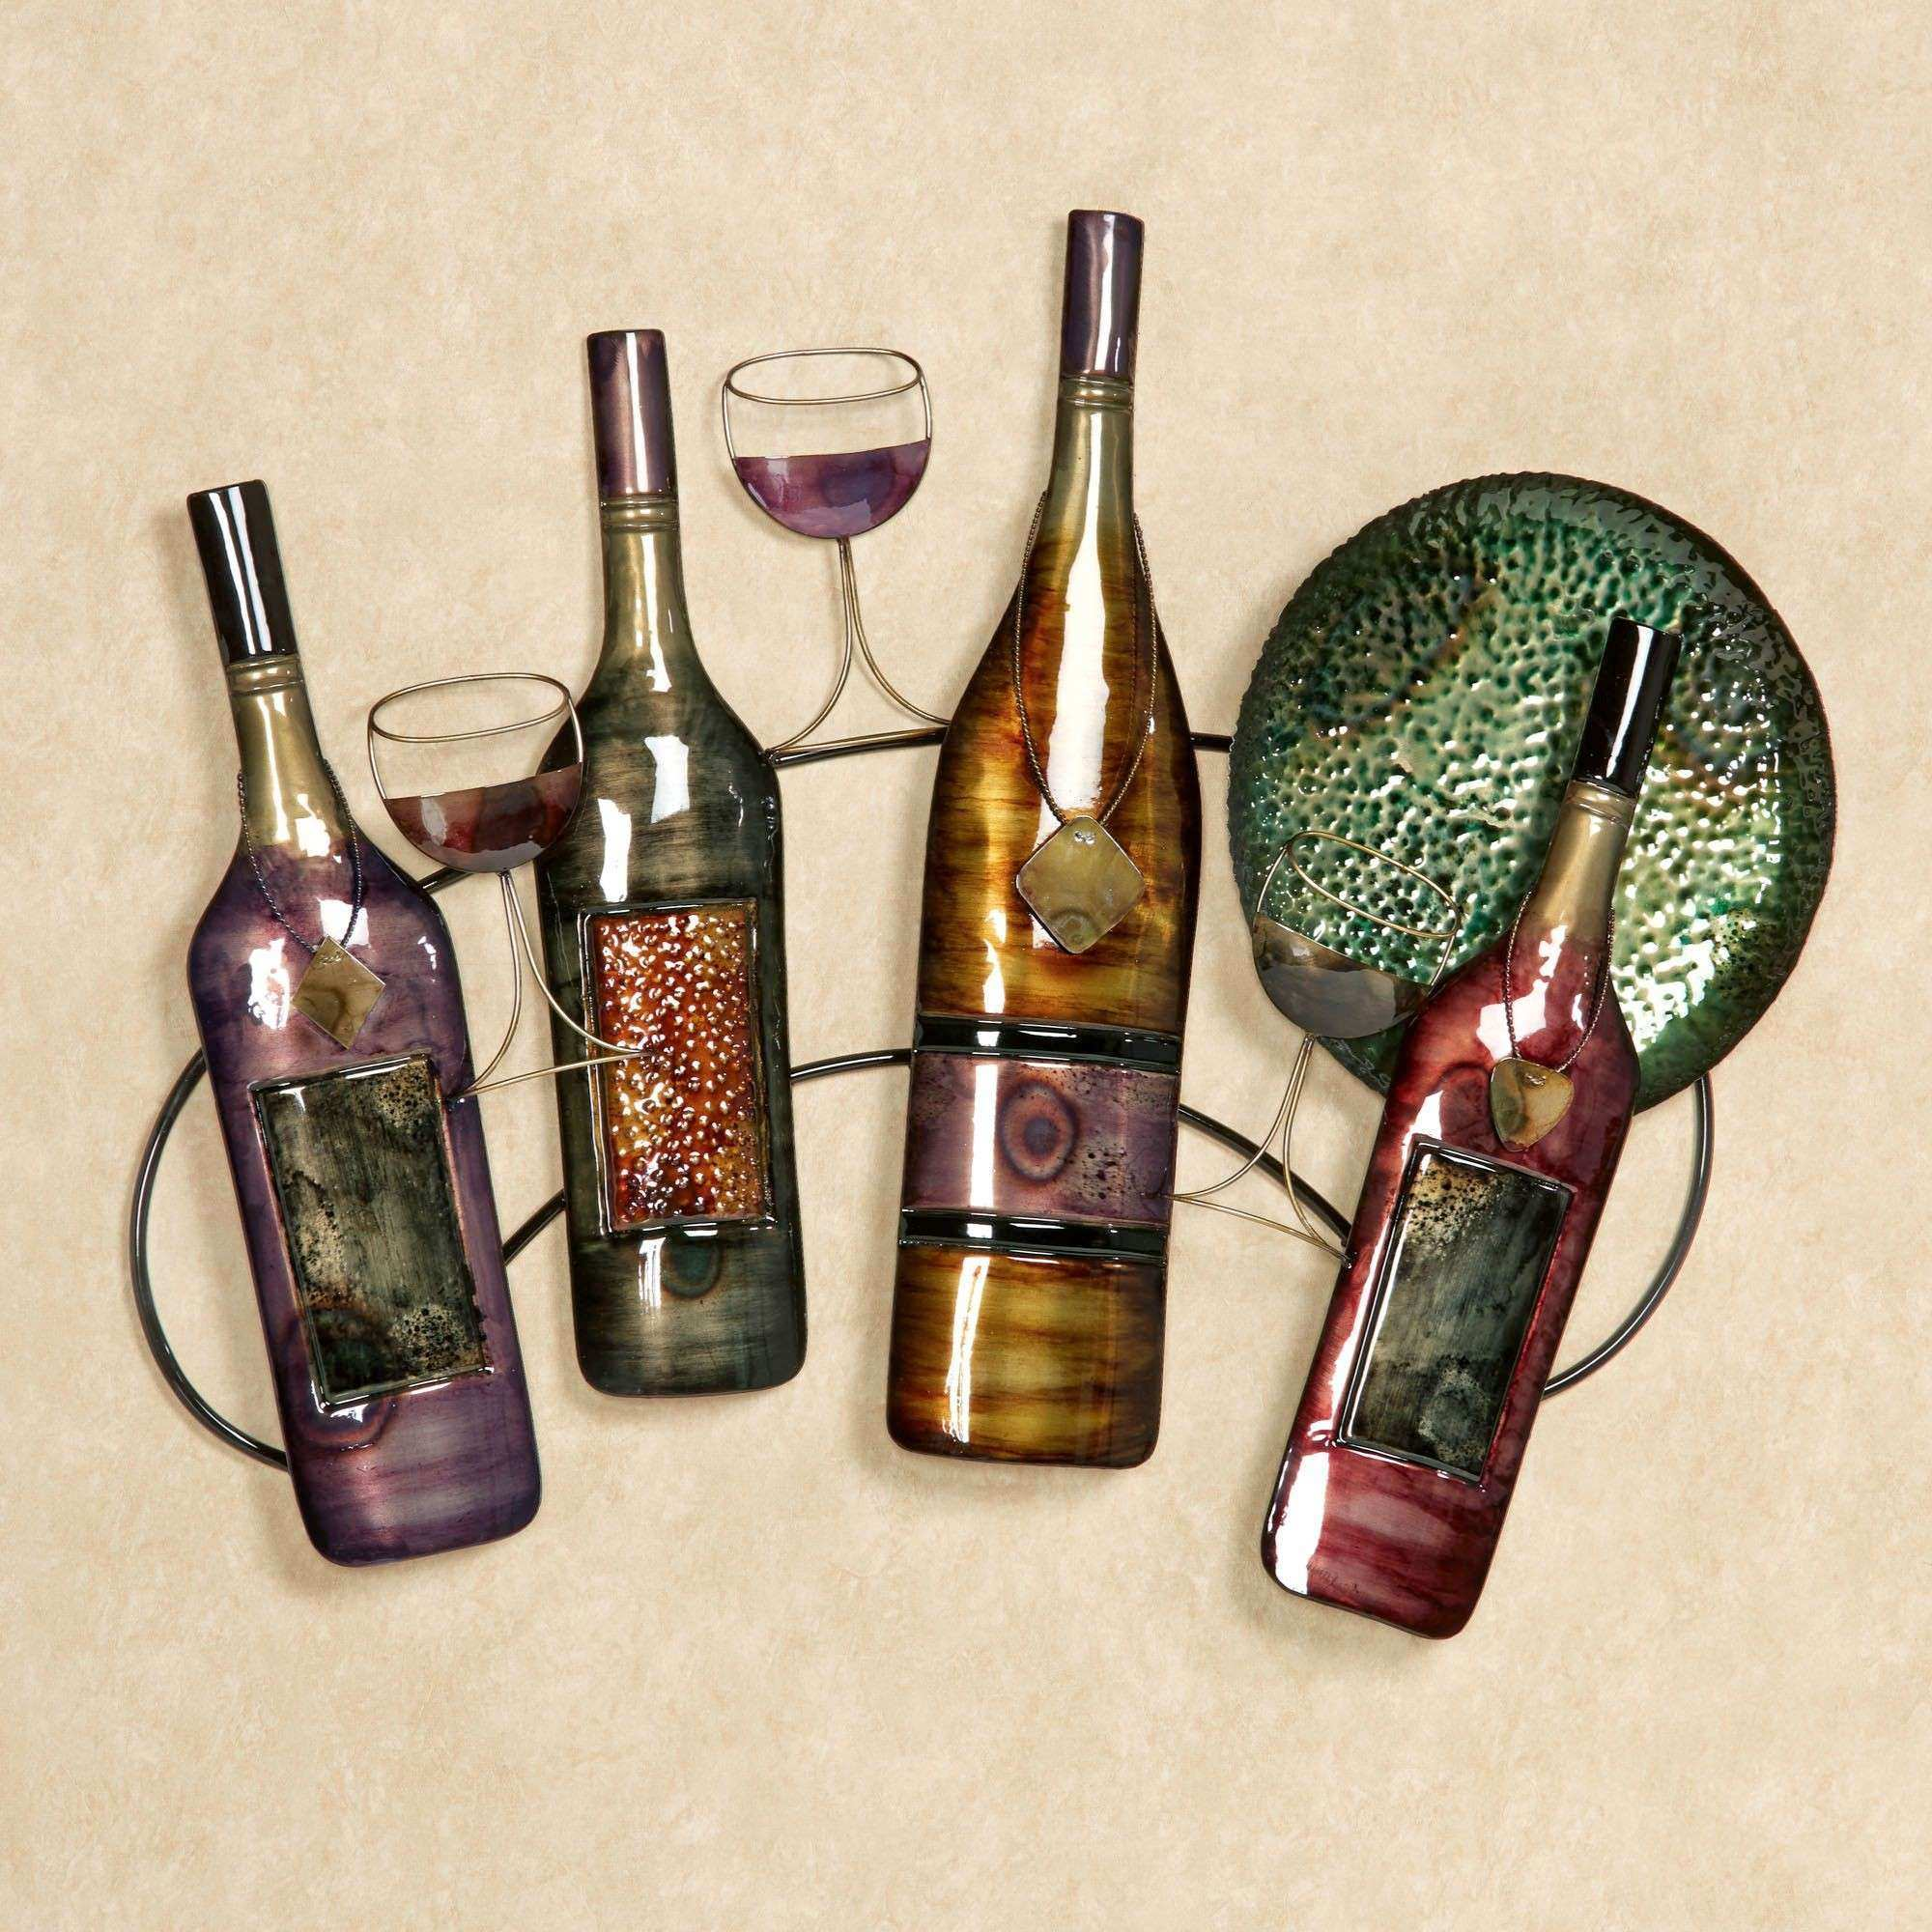 Wine Bottle Metal Wall Art Unique Wall Art Decor Purchased Recent Wine Wall Art Metal & Wine Bottle Metal Wall Art Unique Wall Art Decor Purchased Recent ...